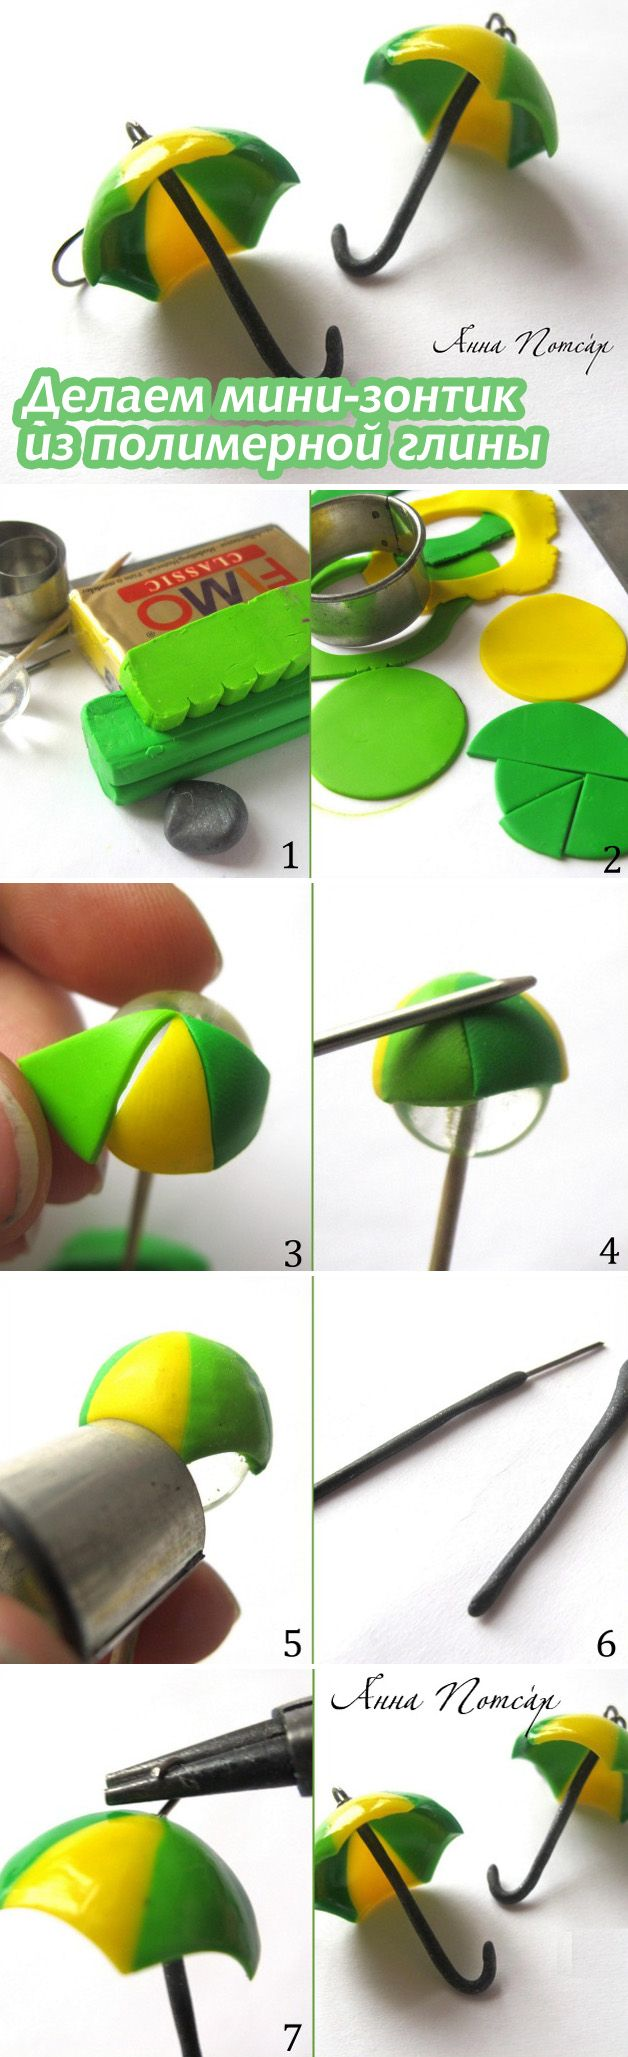 mini umbrella tutorial